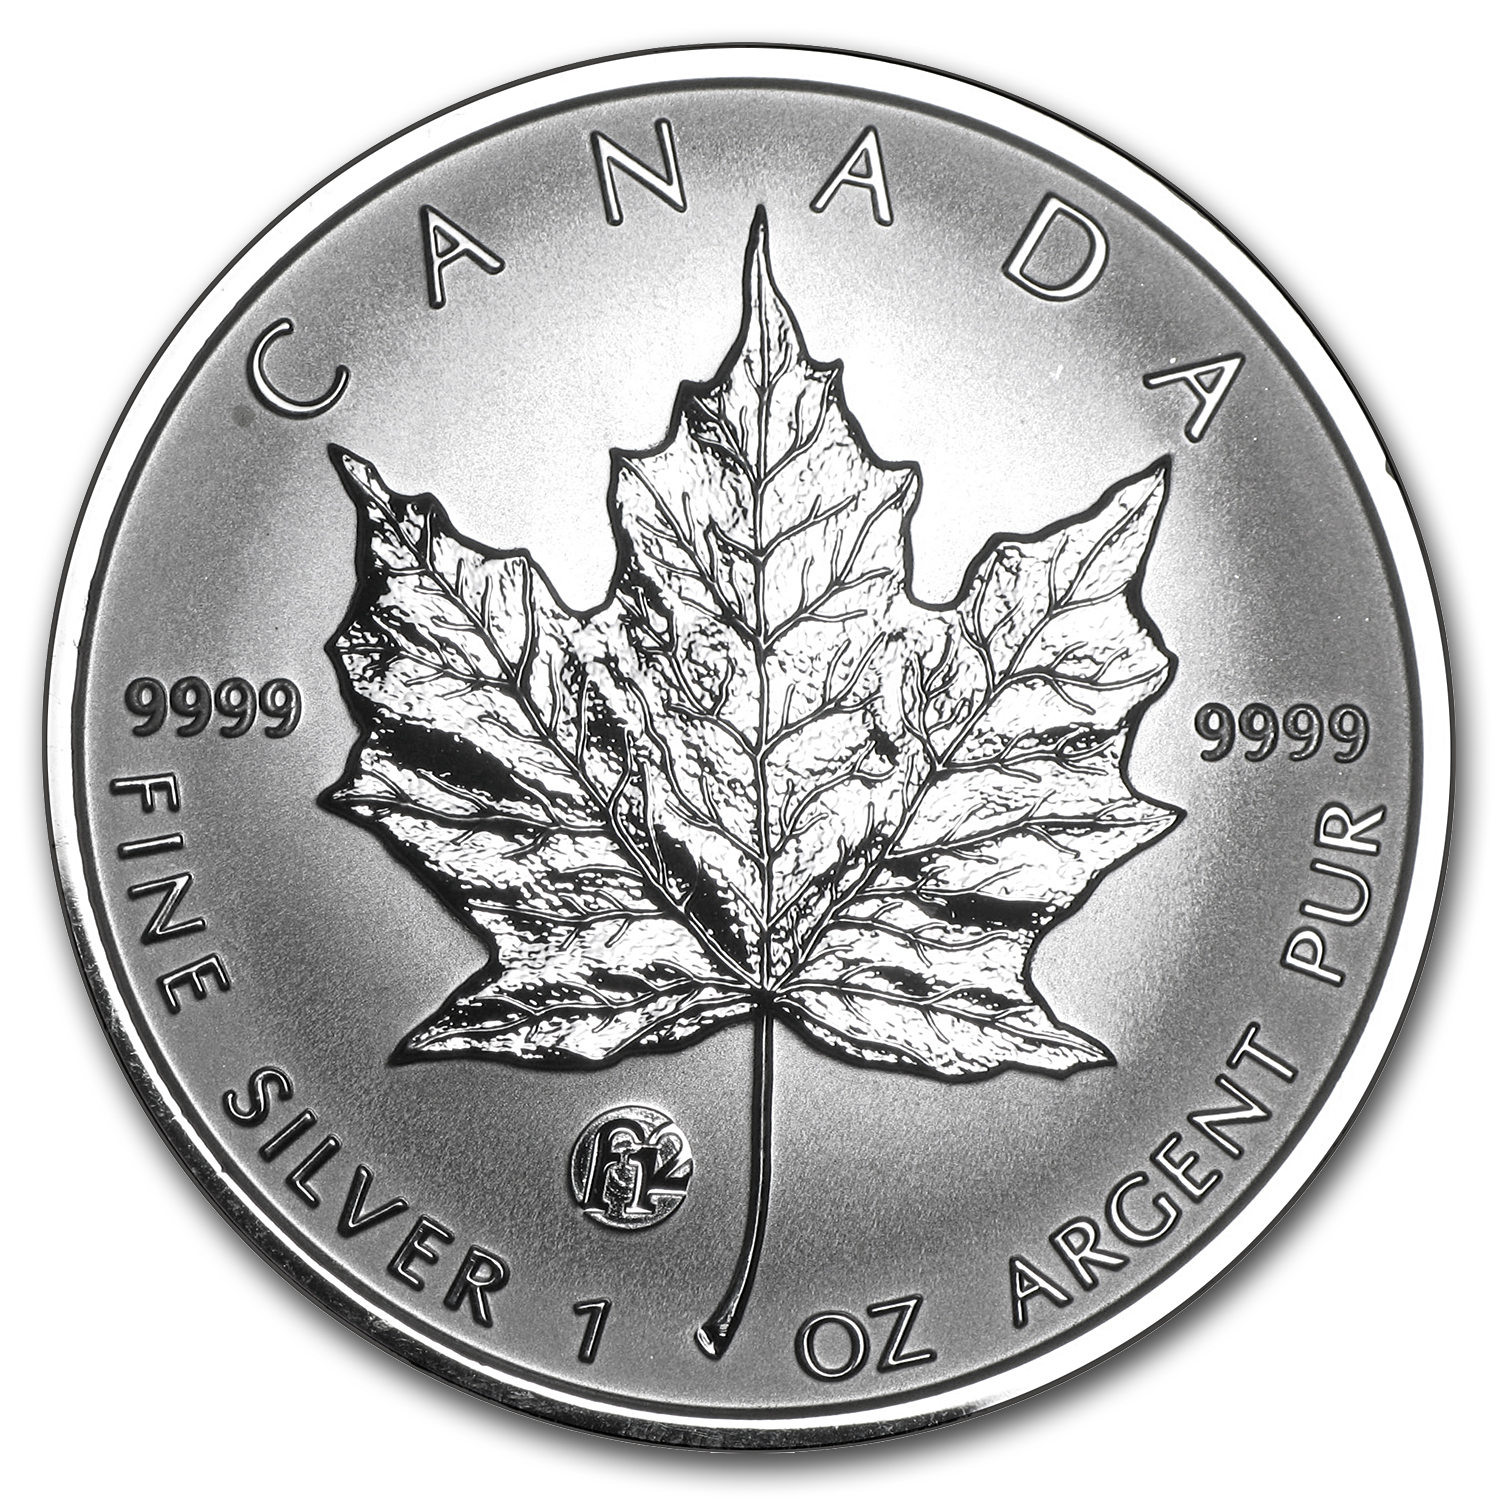 2007 Canada 1 oz Silver Maple Leaf F12 Privy